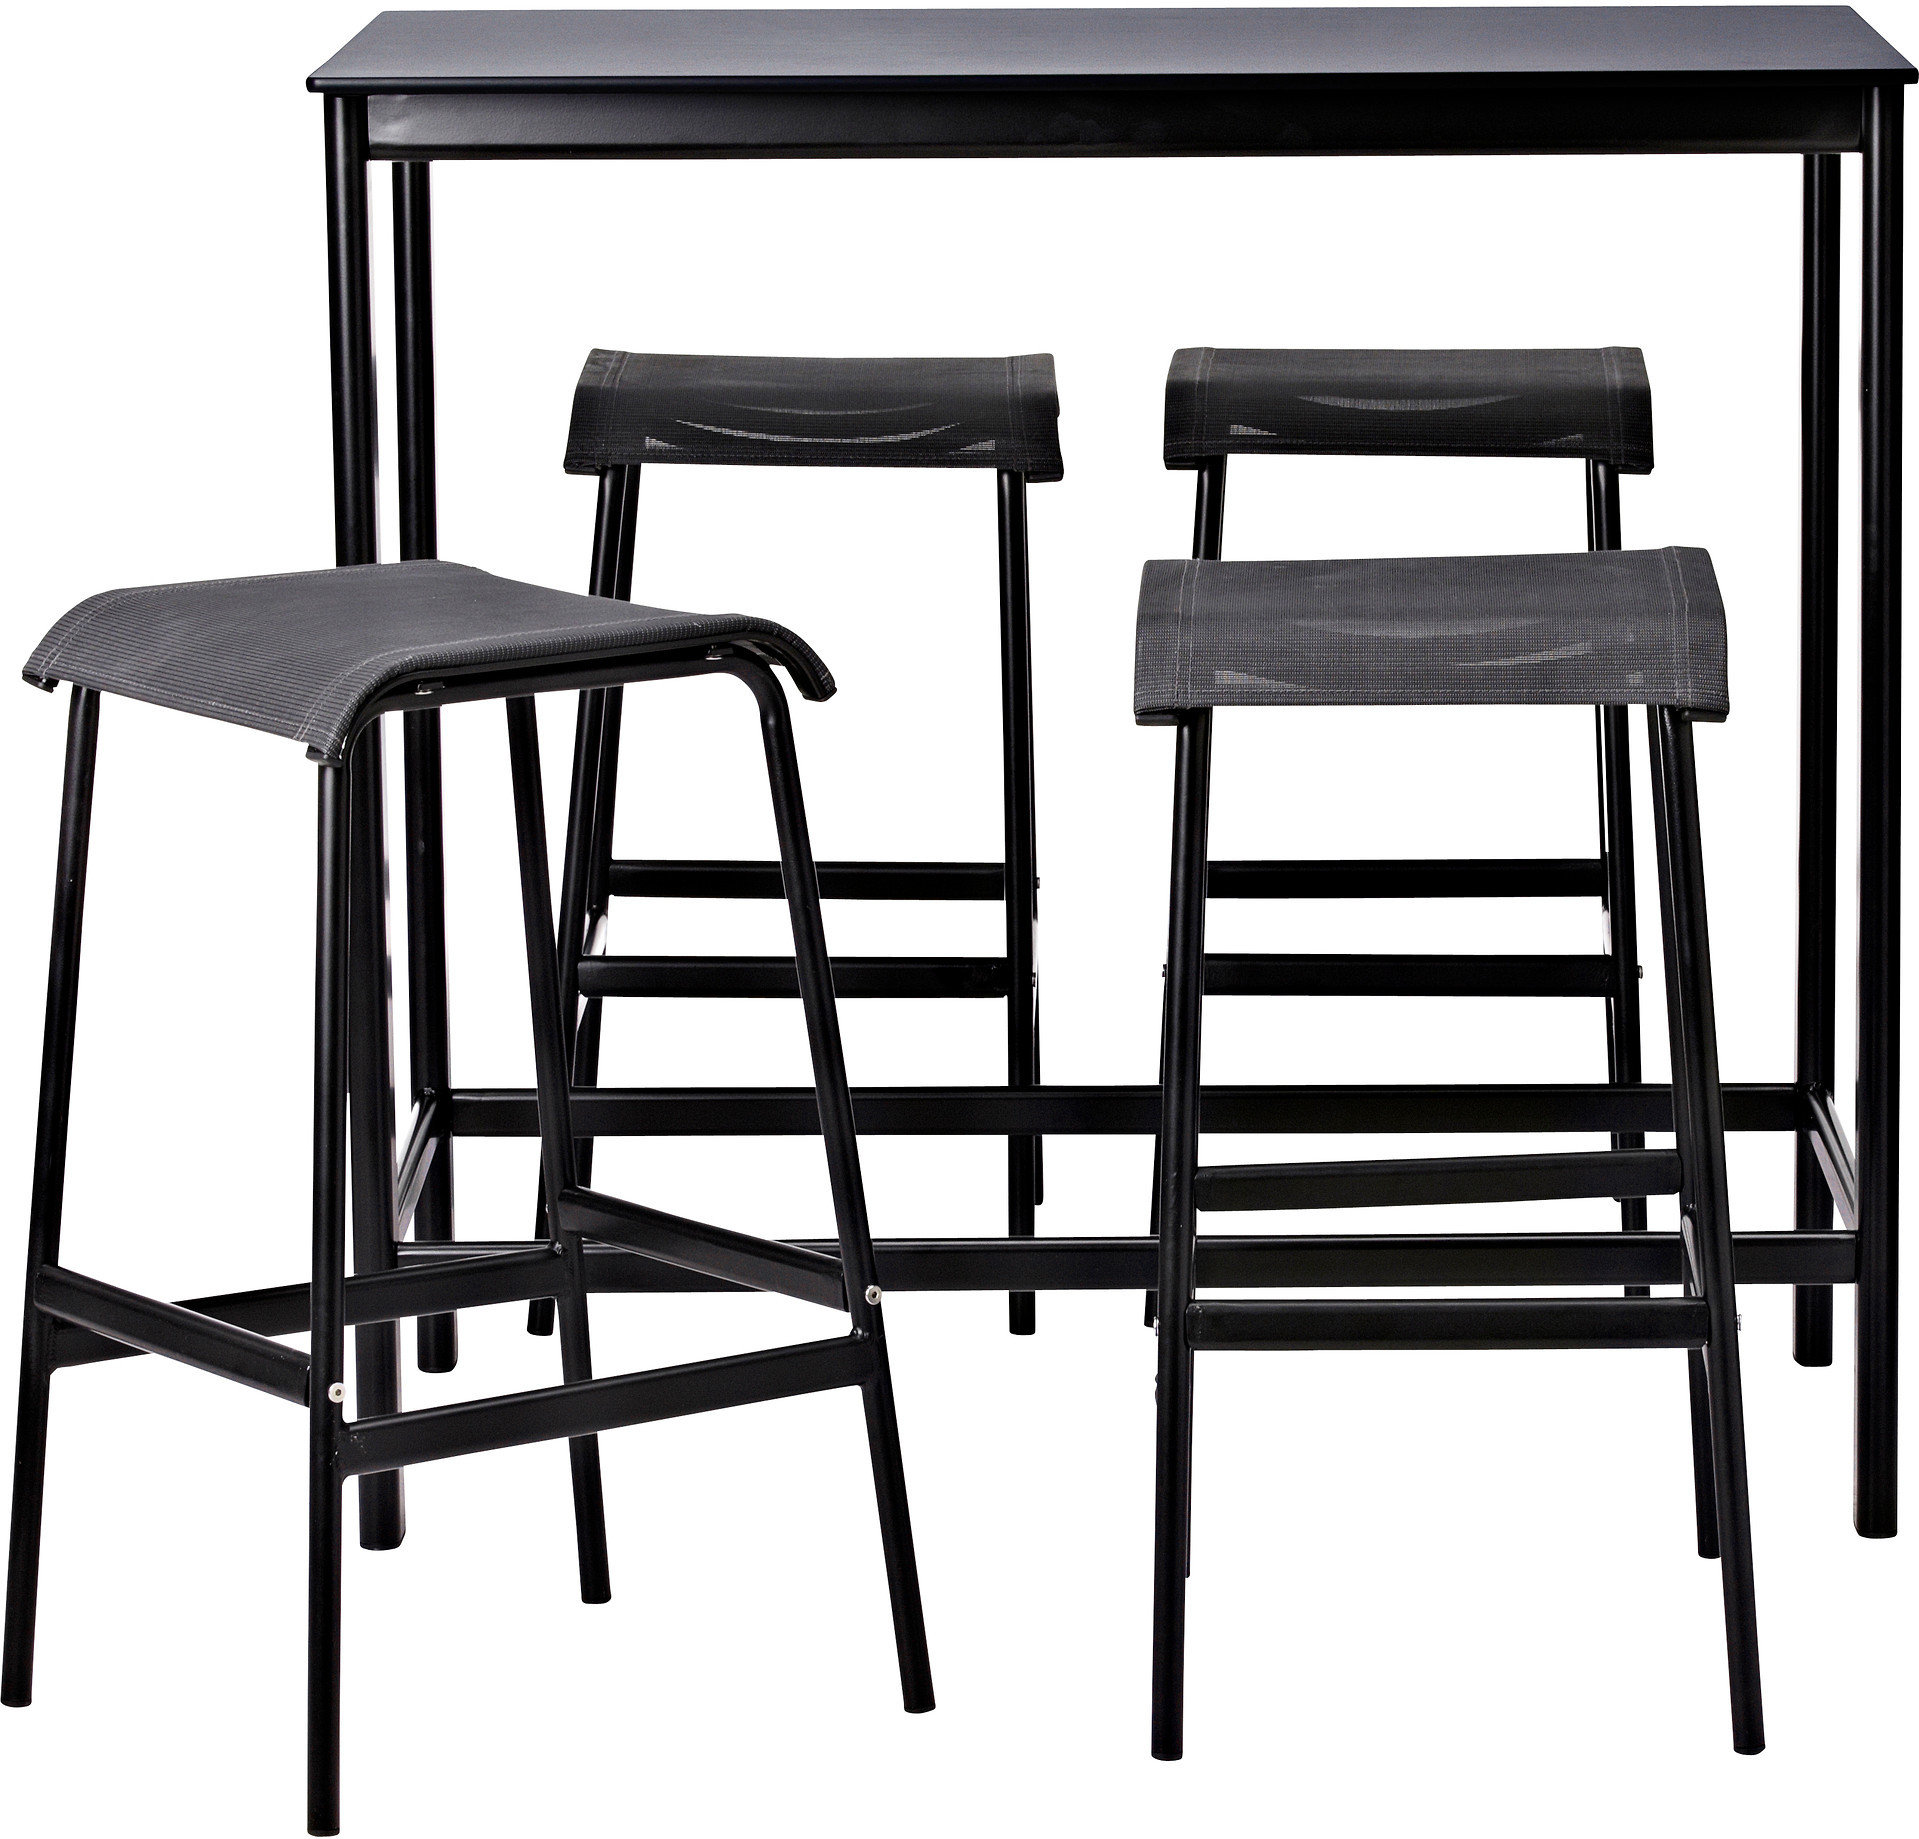 table haute mange debout ikea table haute cuisine ikea. Black Bedroom Furniture Sets. Home Design Ideas